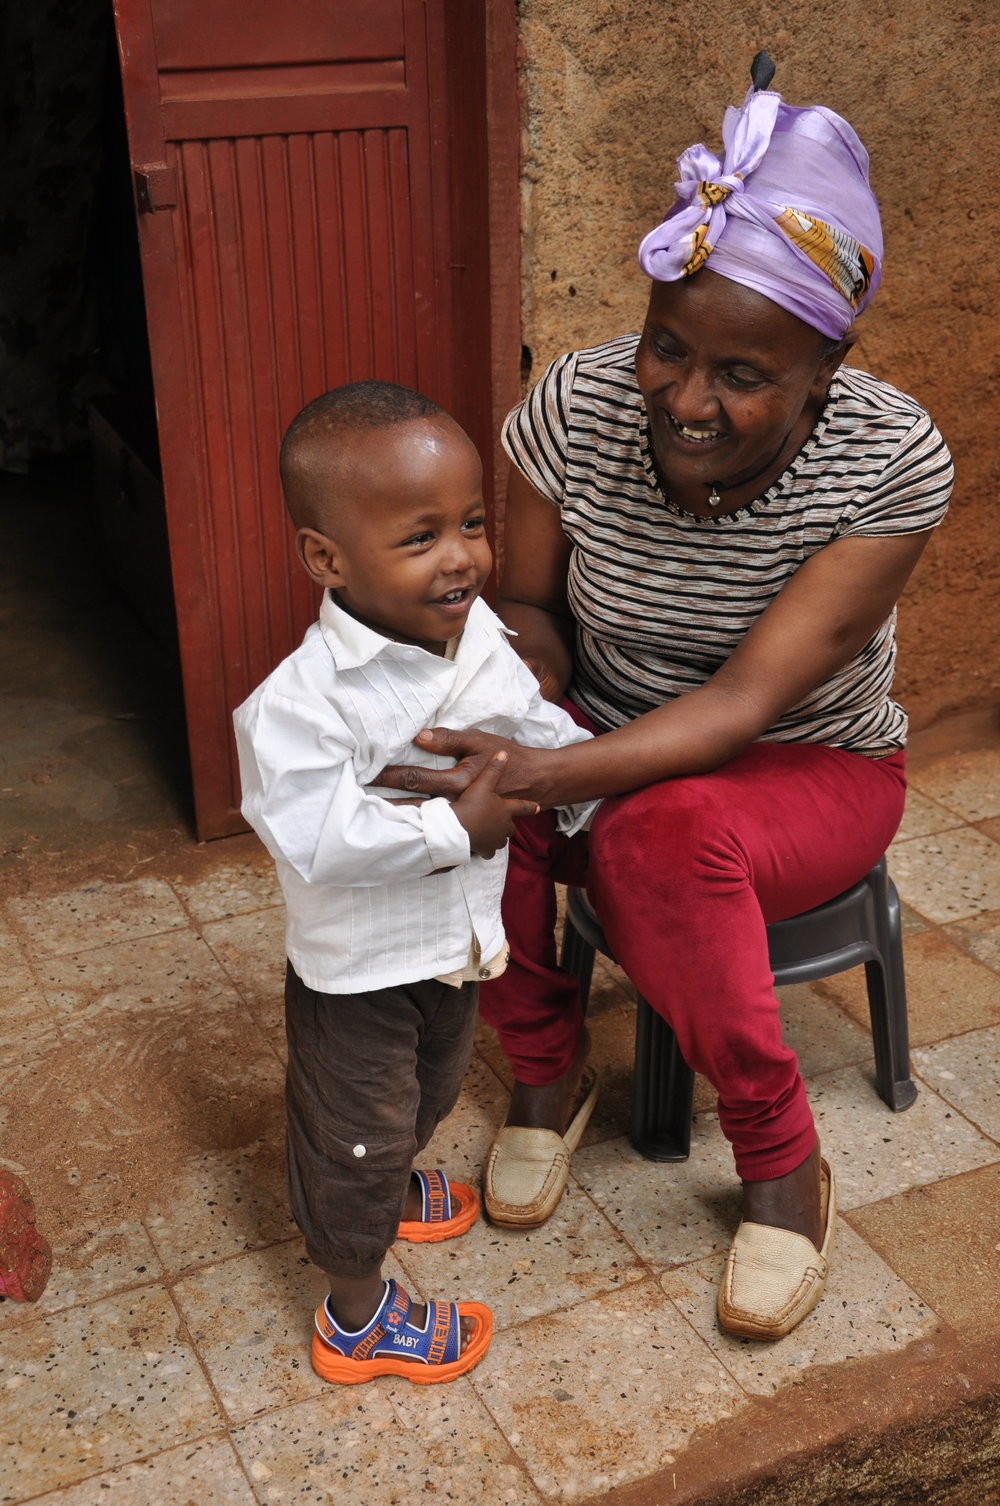 Yhune with his new mother, an older lady who just treats him like gold.